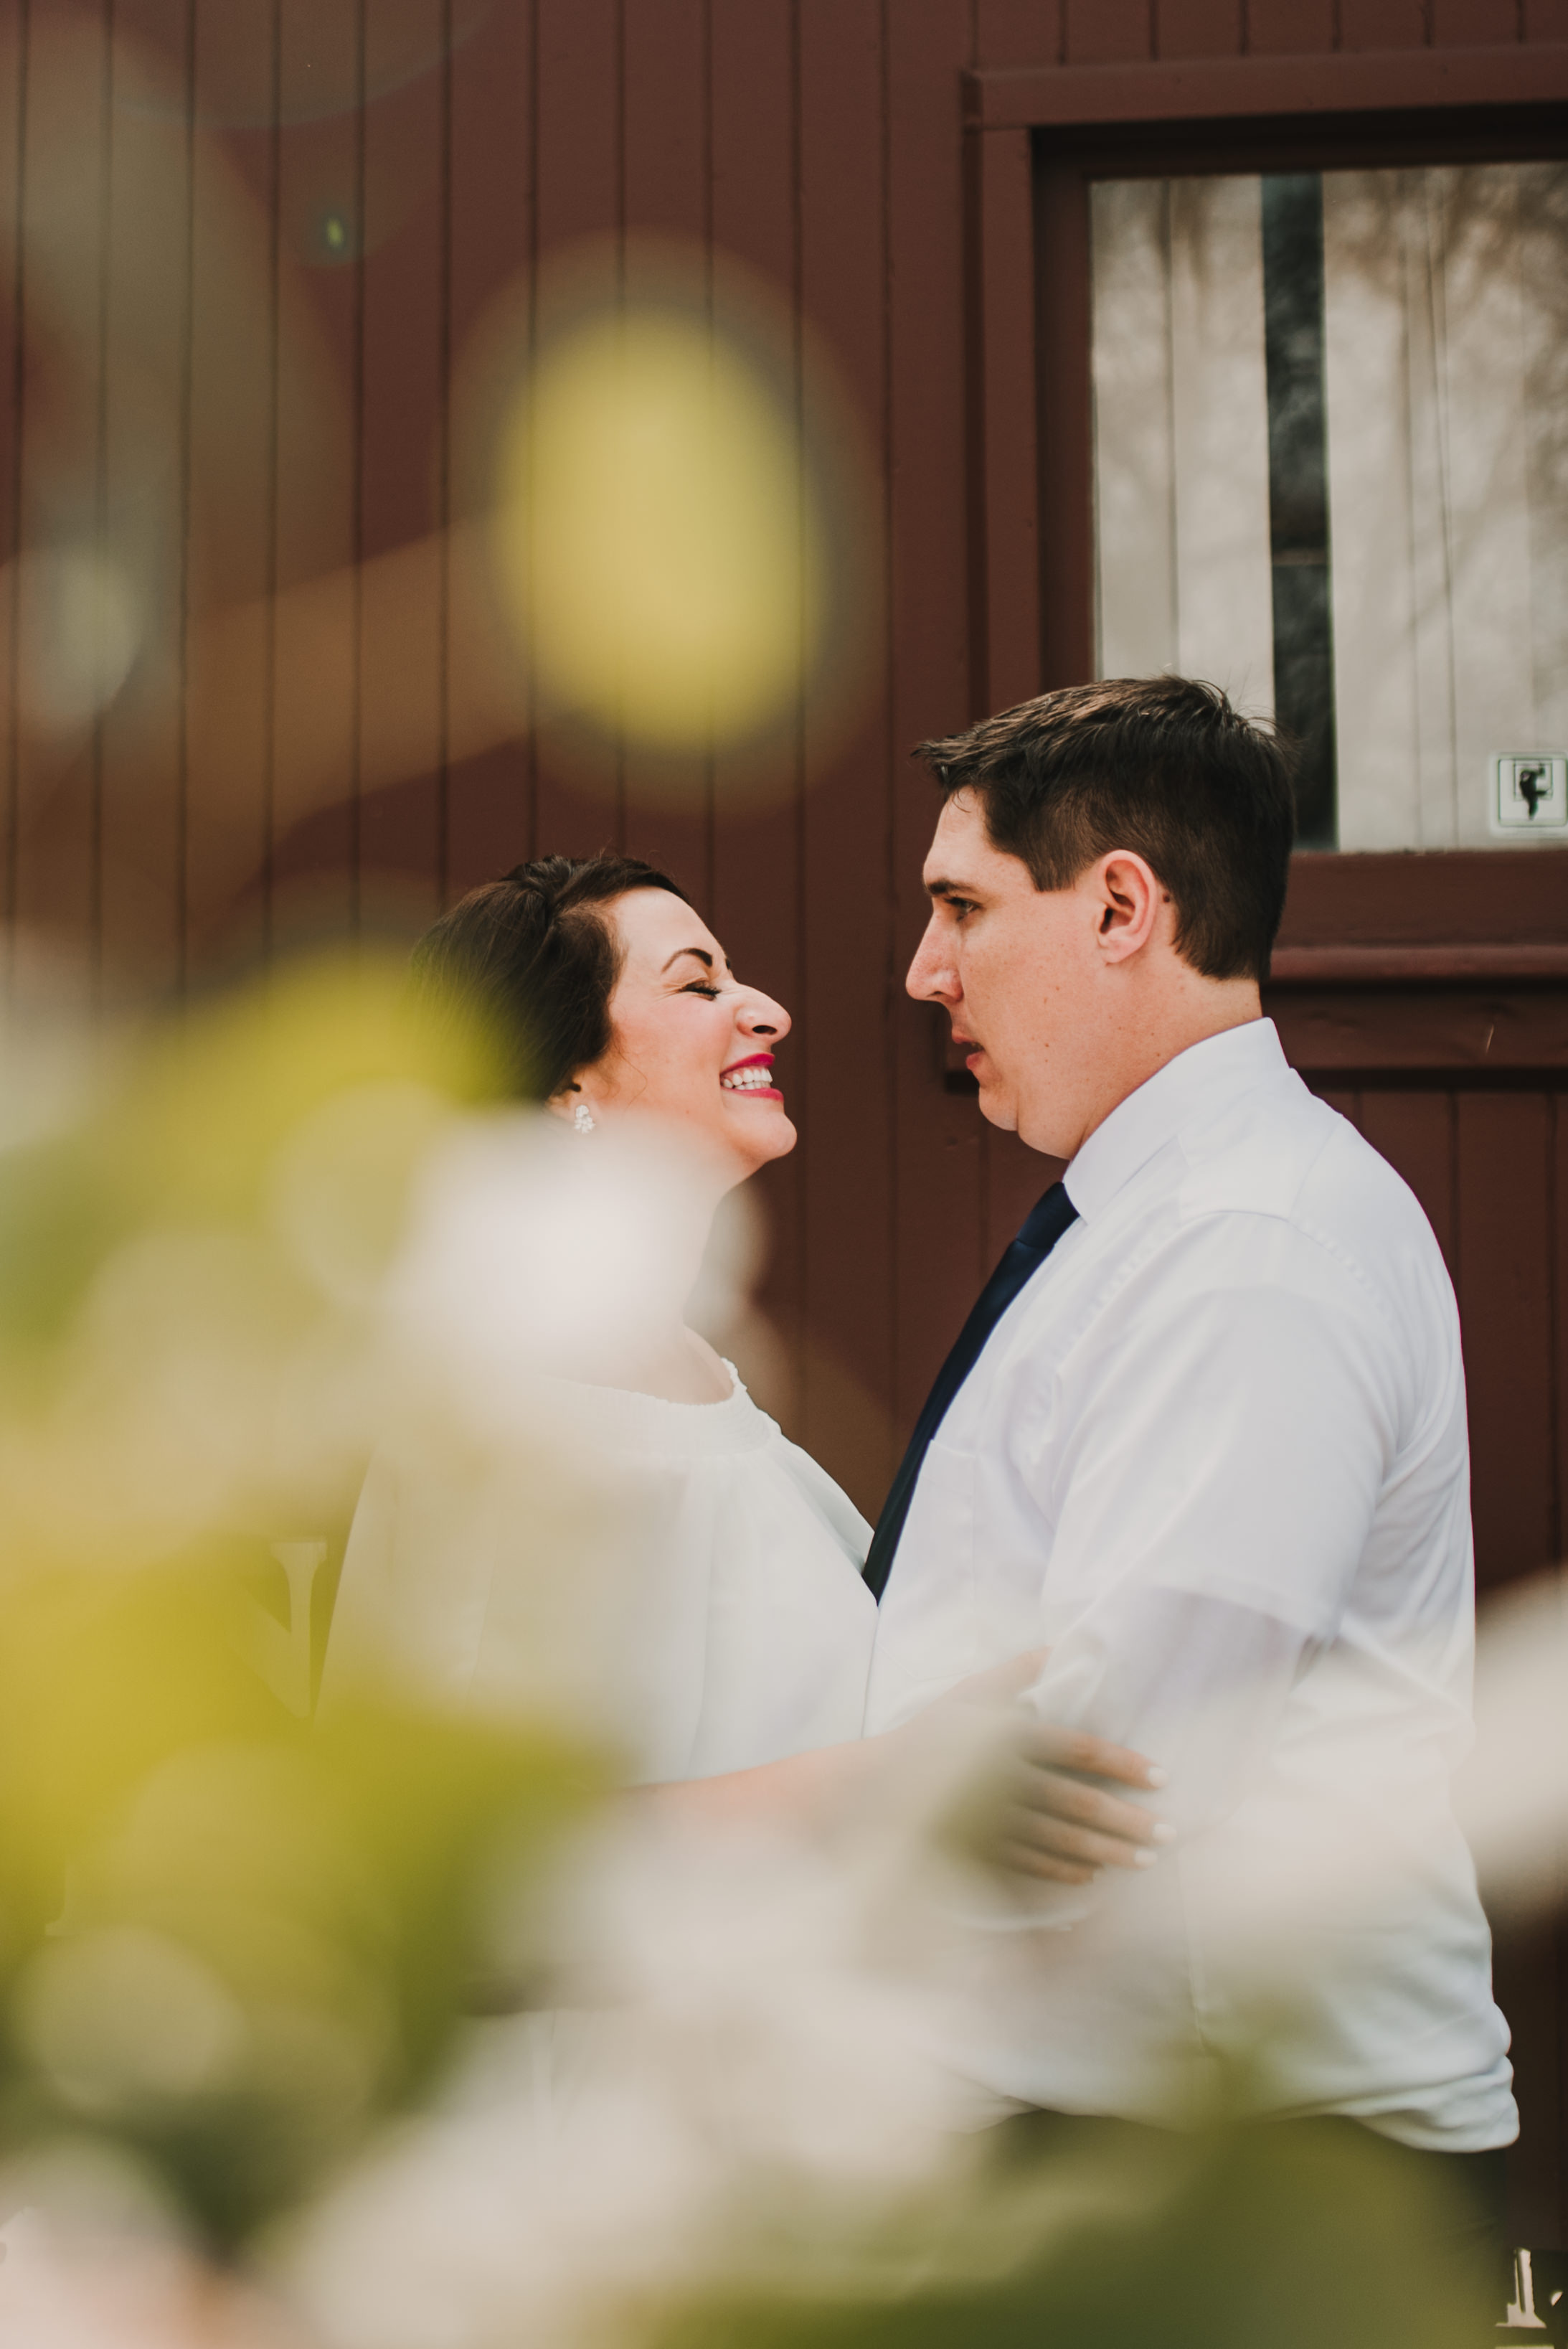 Bride and groom laughing together outside